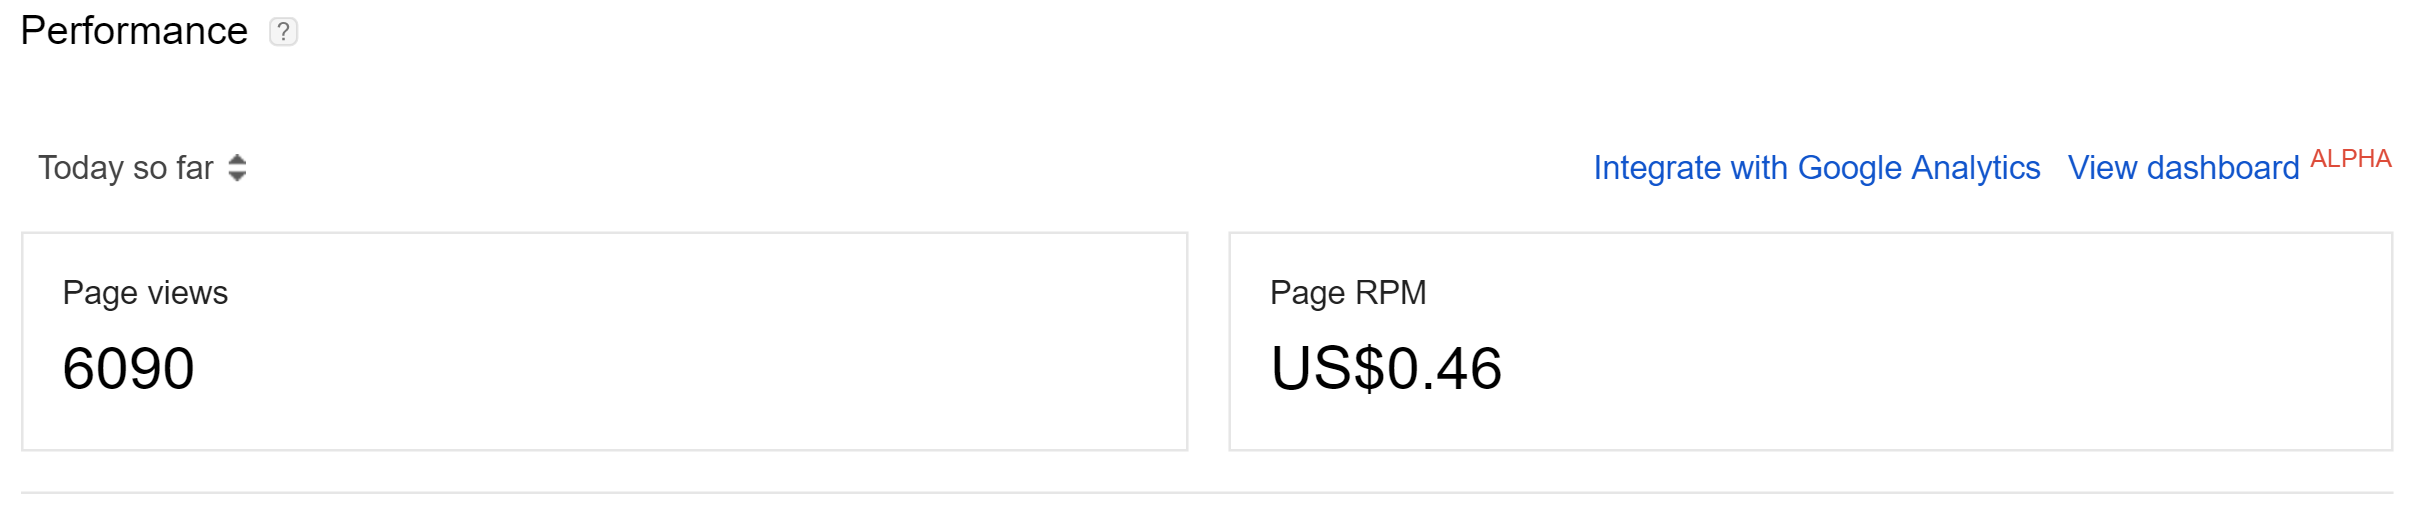 Increase Youtube Rpm To Boost Adsense Earnings Watchmetech View Calculate Everyday Estimated Generated By Monetization We Need Divide Our Video Impressions With 1000 And Multiple The Value